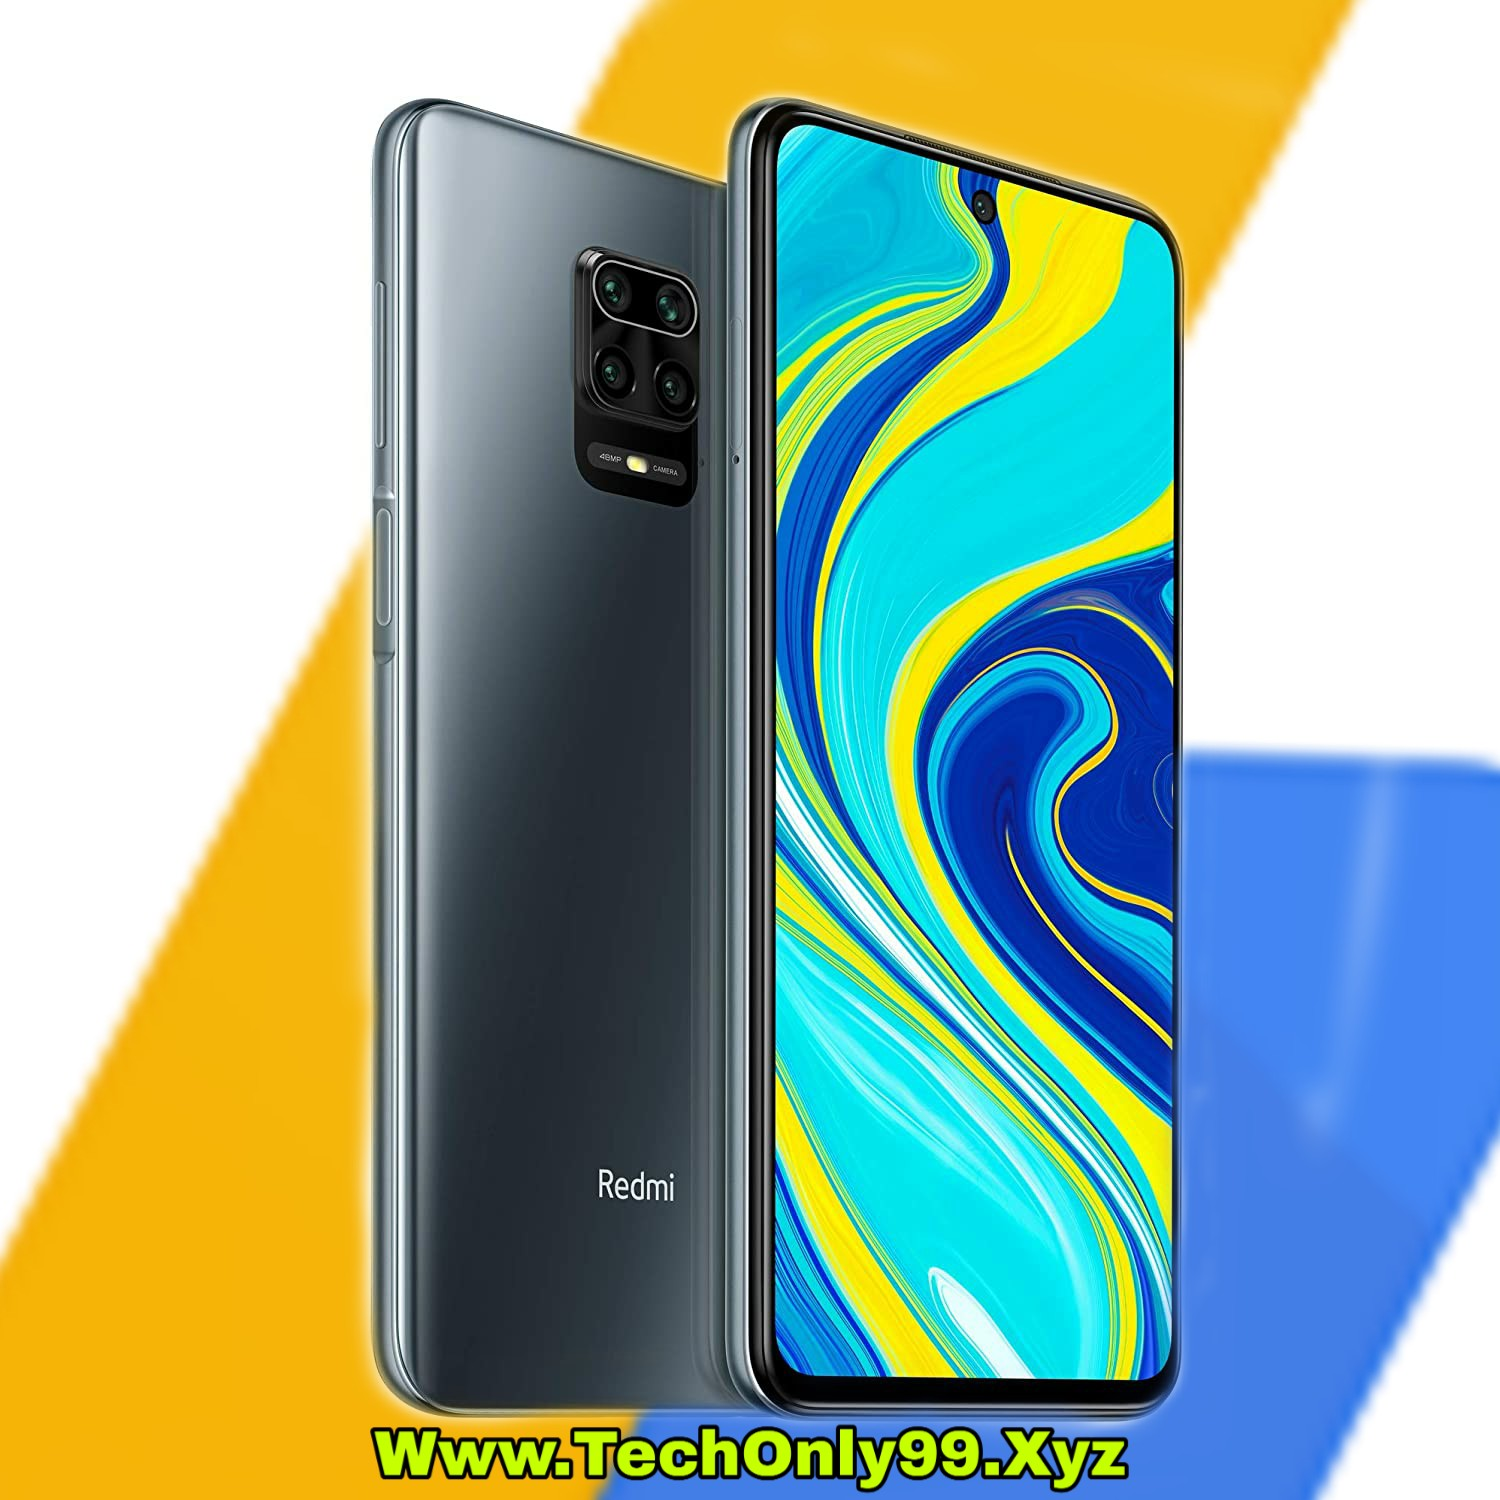 Xiaomi Redmi Note 9 Pro Best Price in India 2020, Specifications & Review